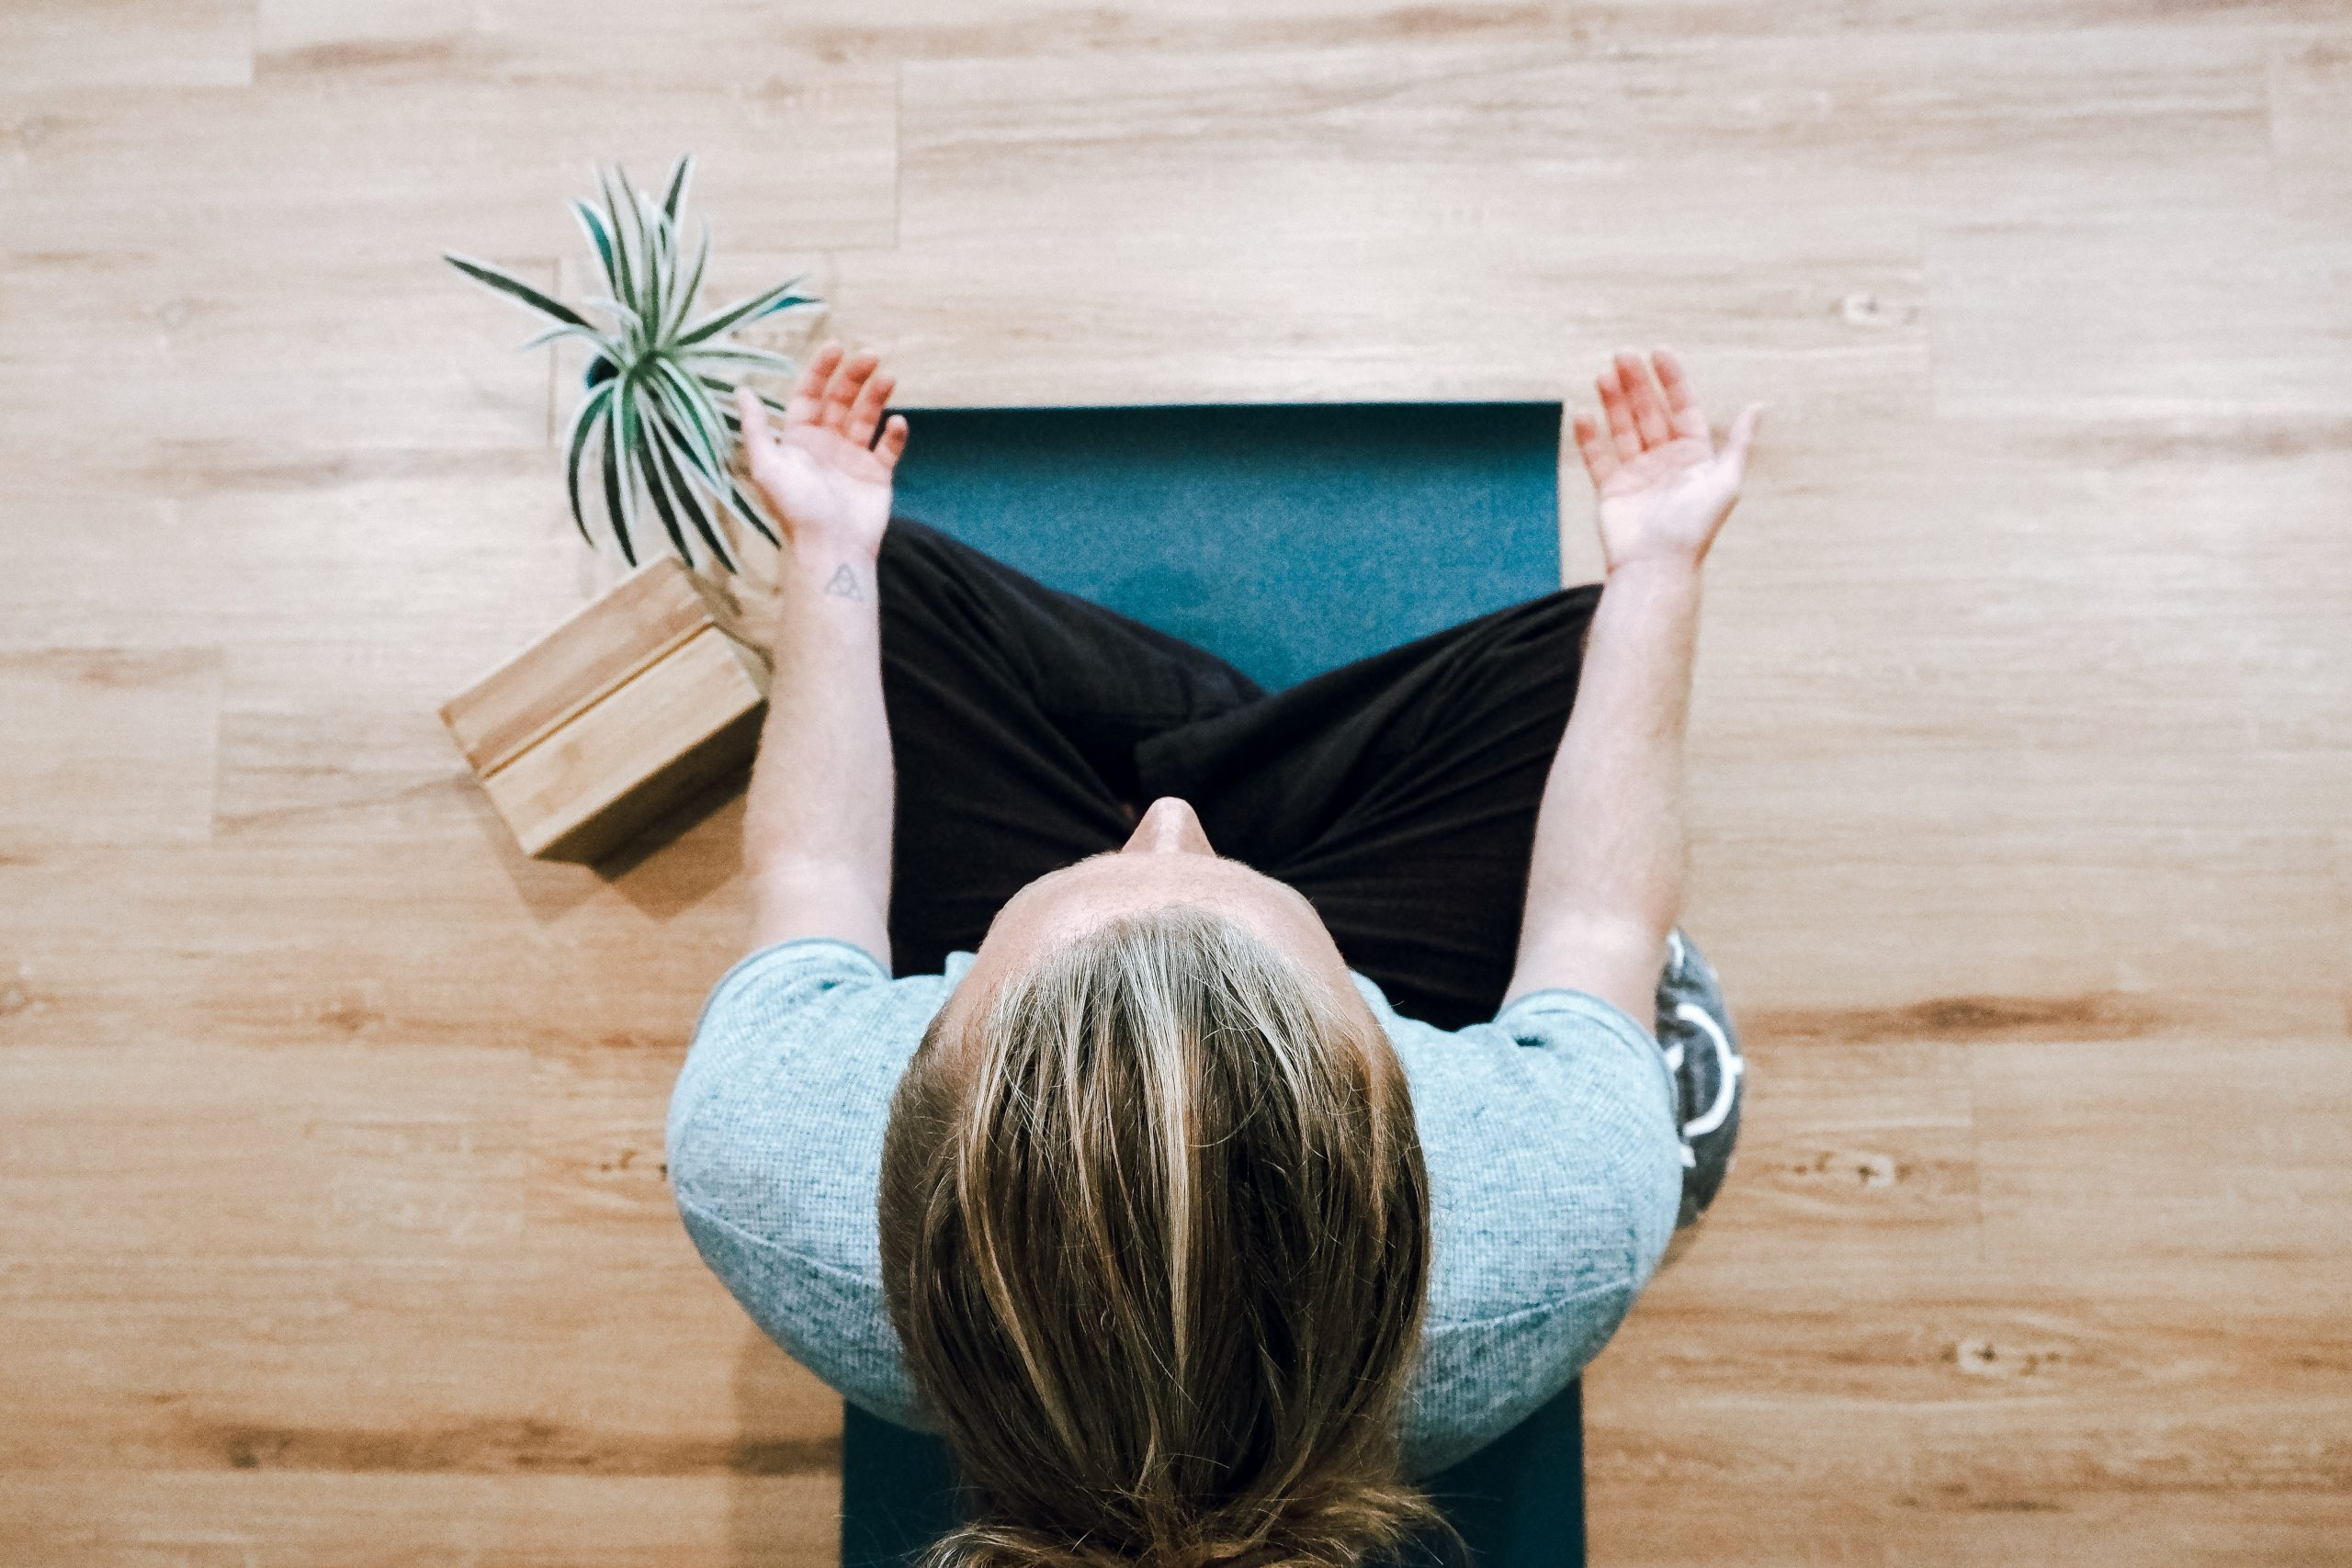 Working with Mindfulness 1-Day Course